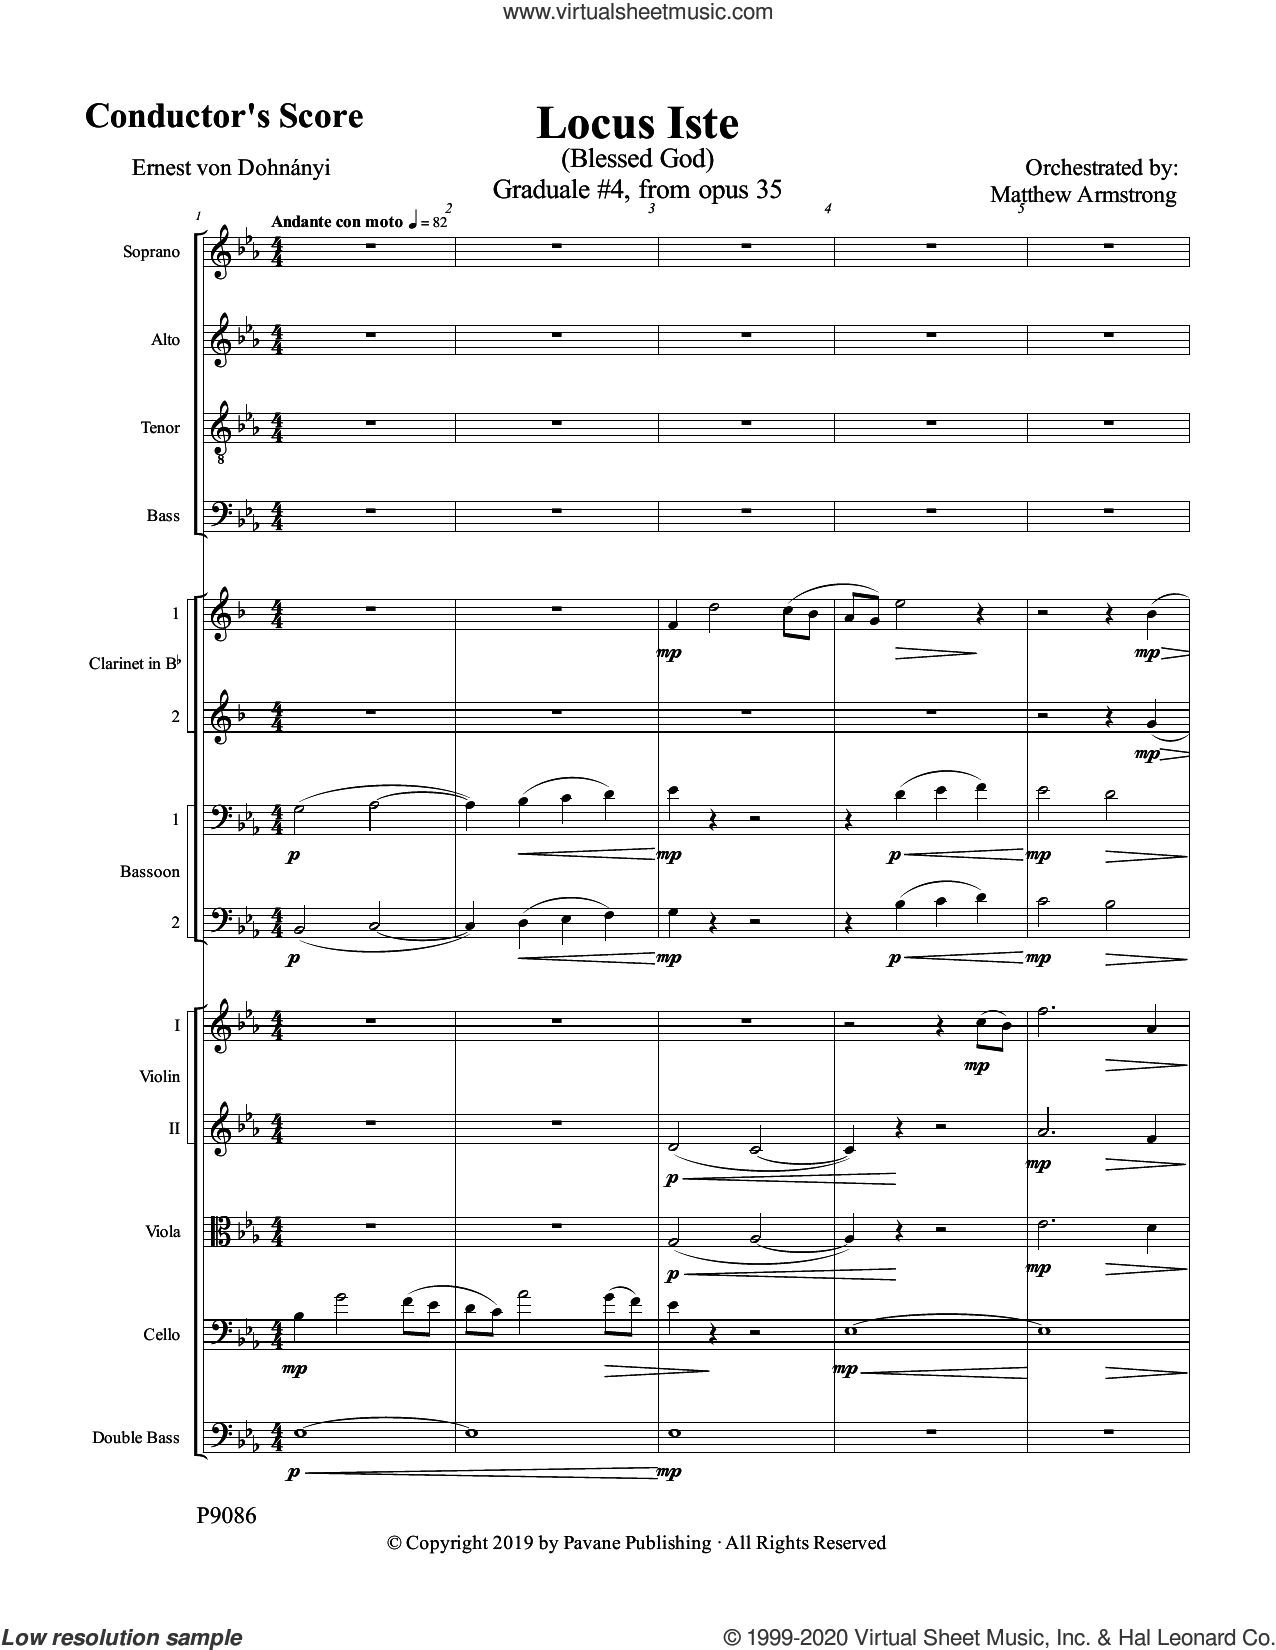 Locus Iste (COMPLETE) sheet music for orchestra/band by Matthew Armstrong and Ernest von Dohnanyi, intermediate skill level